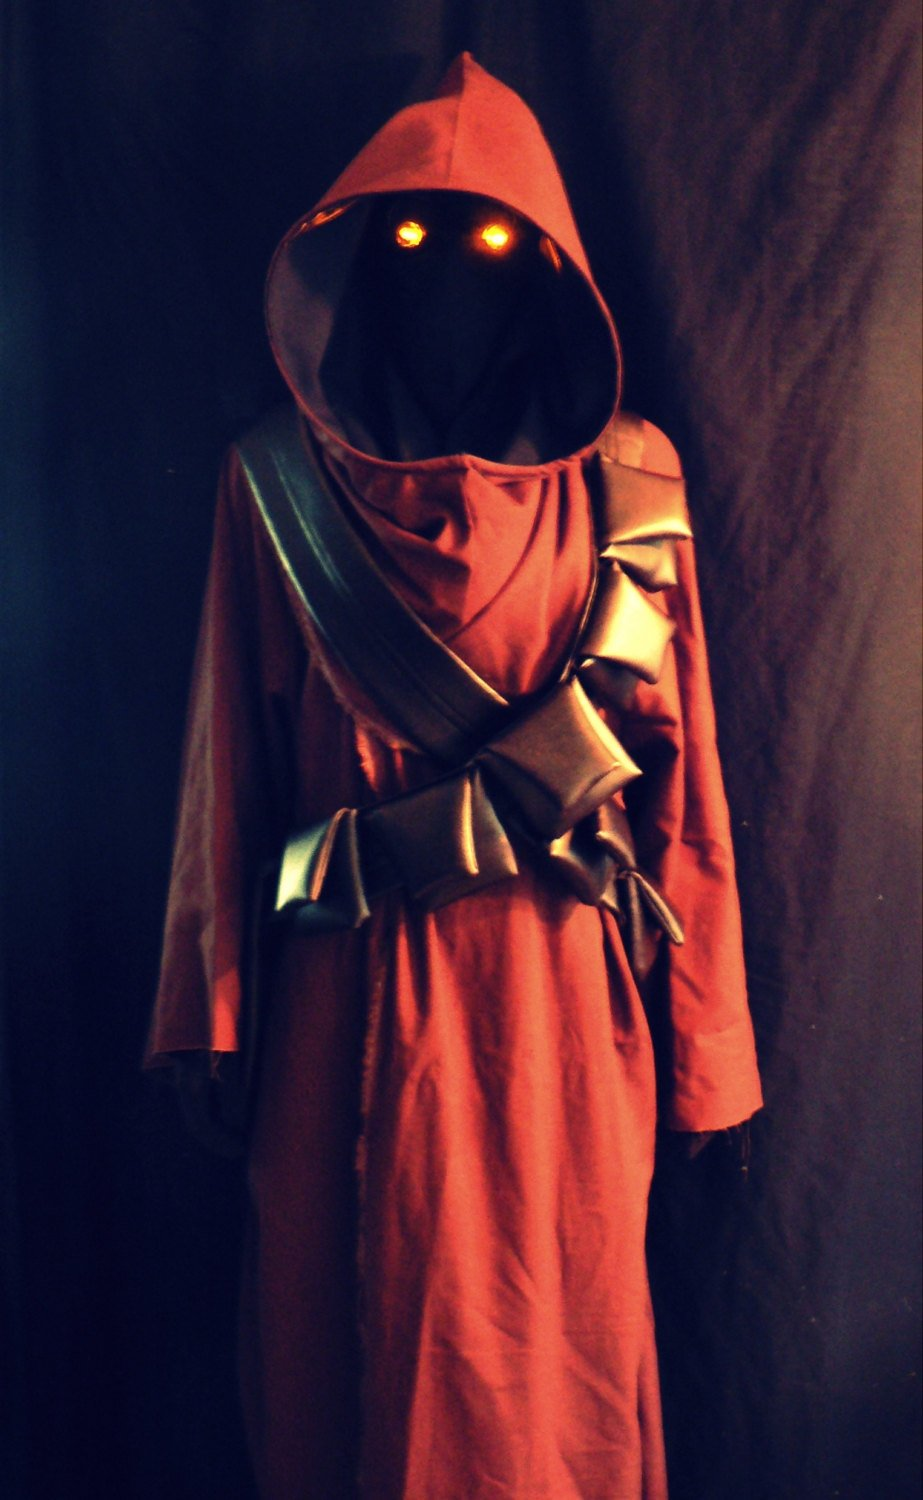 Star Wars Jawa Costume: It's All in the Eyes